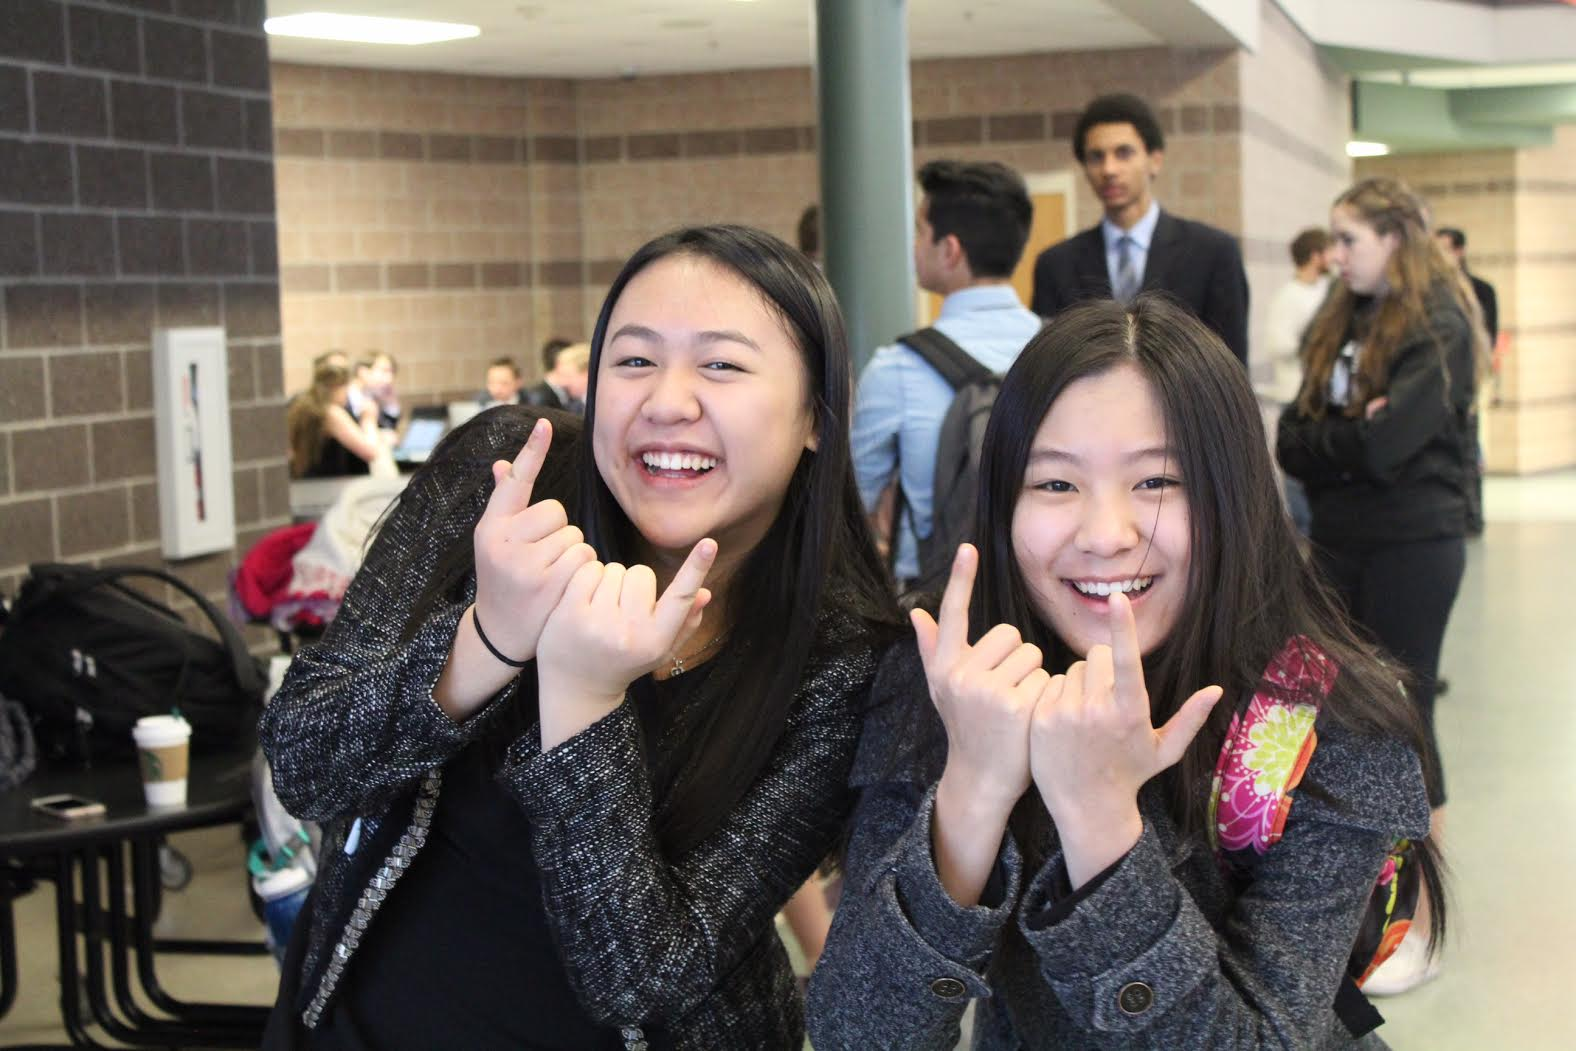 Emily Huang and Annie Chang mess around before the first debate round begins.